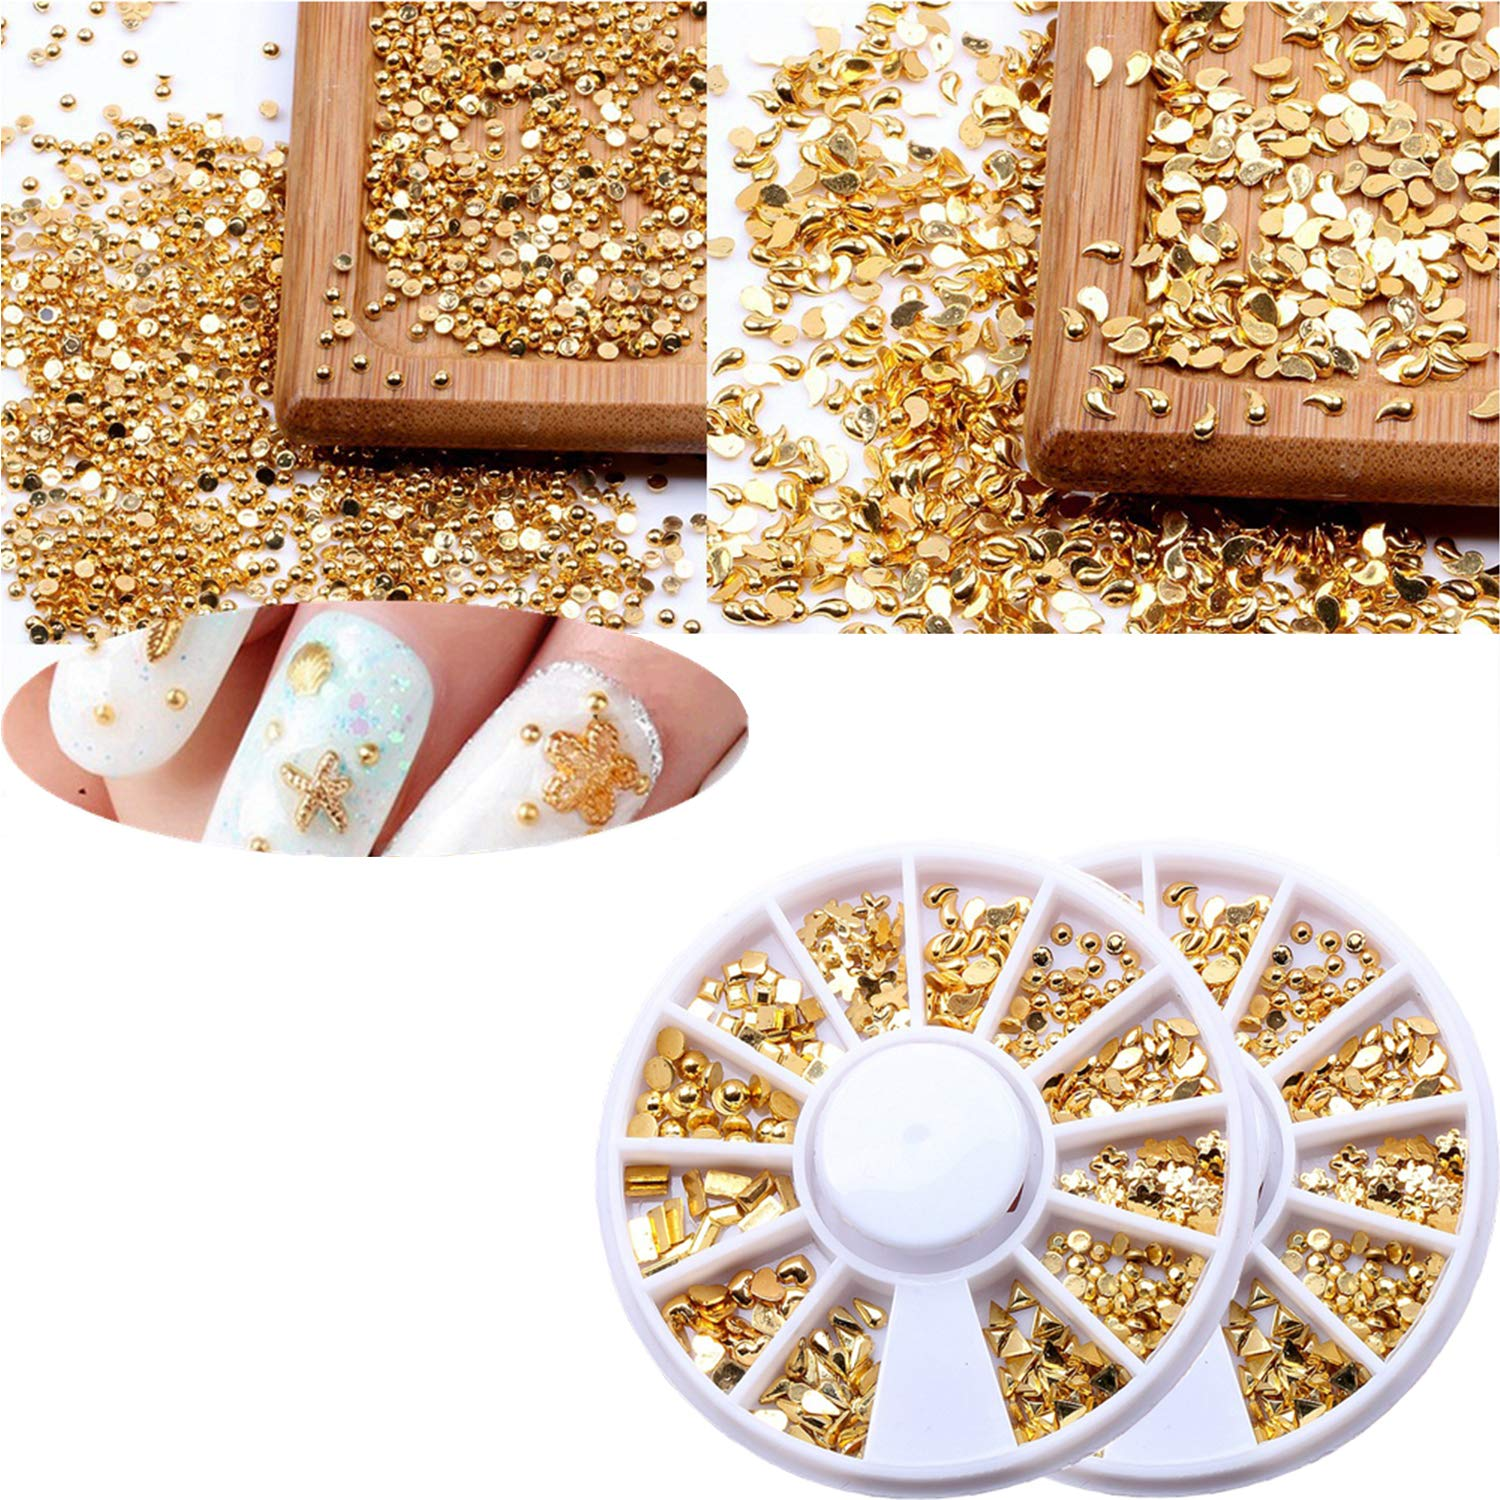 2 Boxes Acrylic Nail Art Nail Gems 3D Nail Art Rhinestone Gold Decal 12 styles Mixed Patterns Triangles hearts water drops square etc (LED Light Cure Needed) For Salon Nail Art DIY